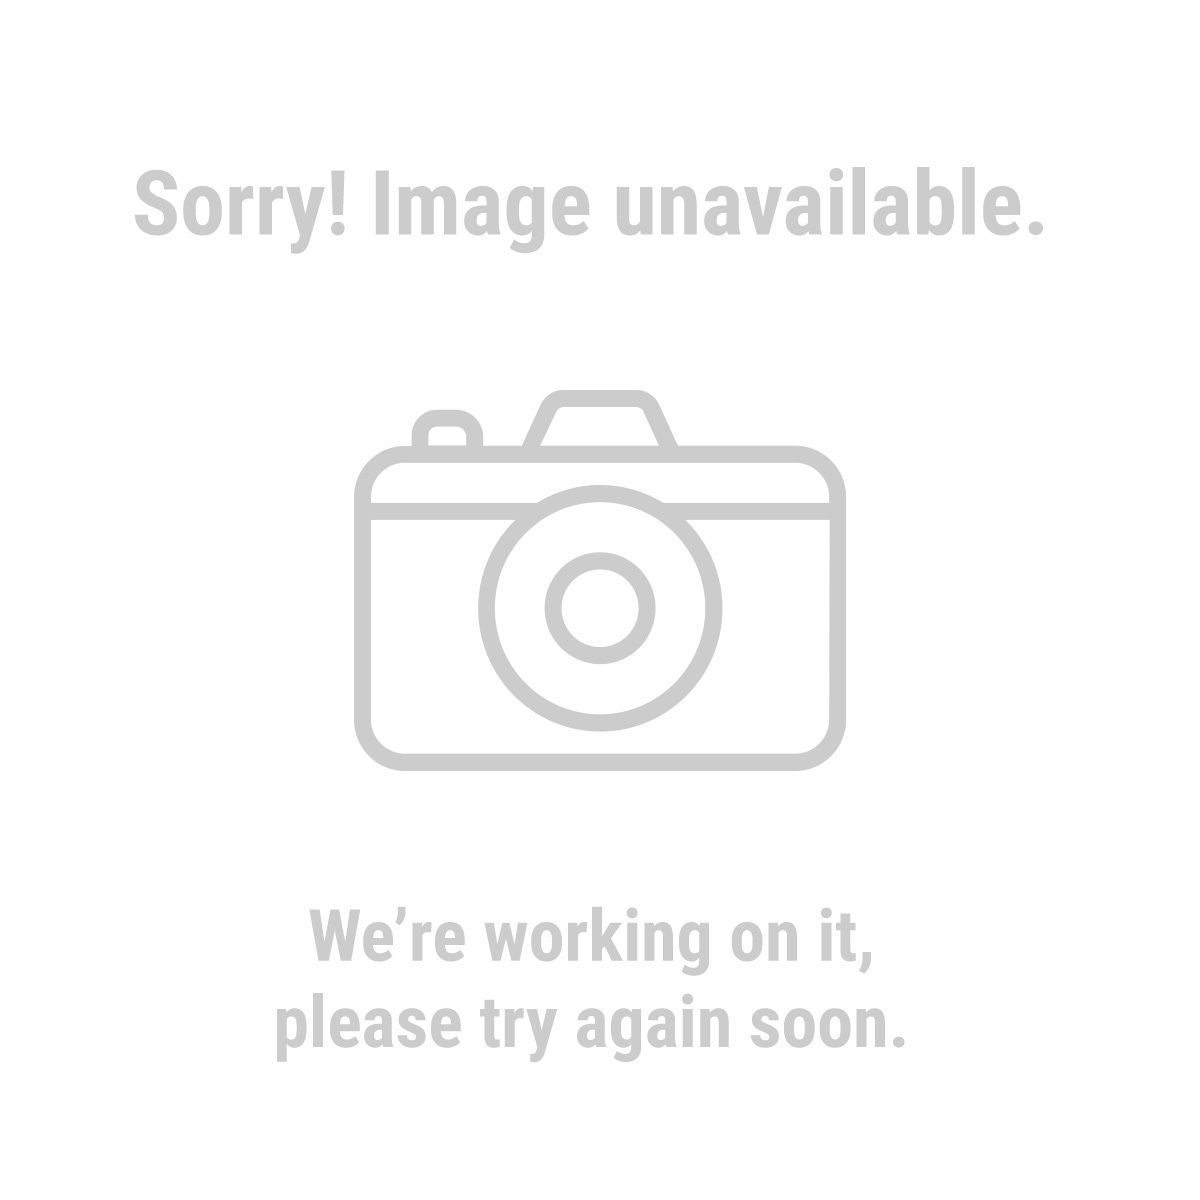 Split Leather Safety Colored Work Gloves